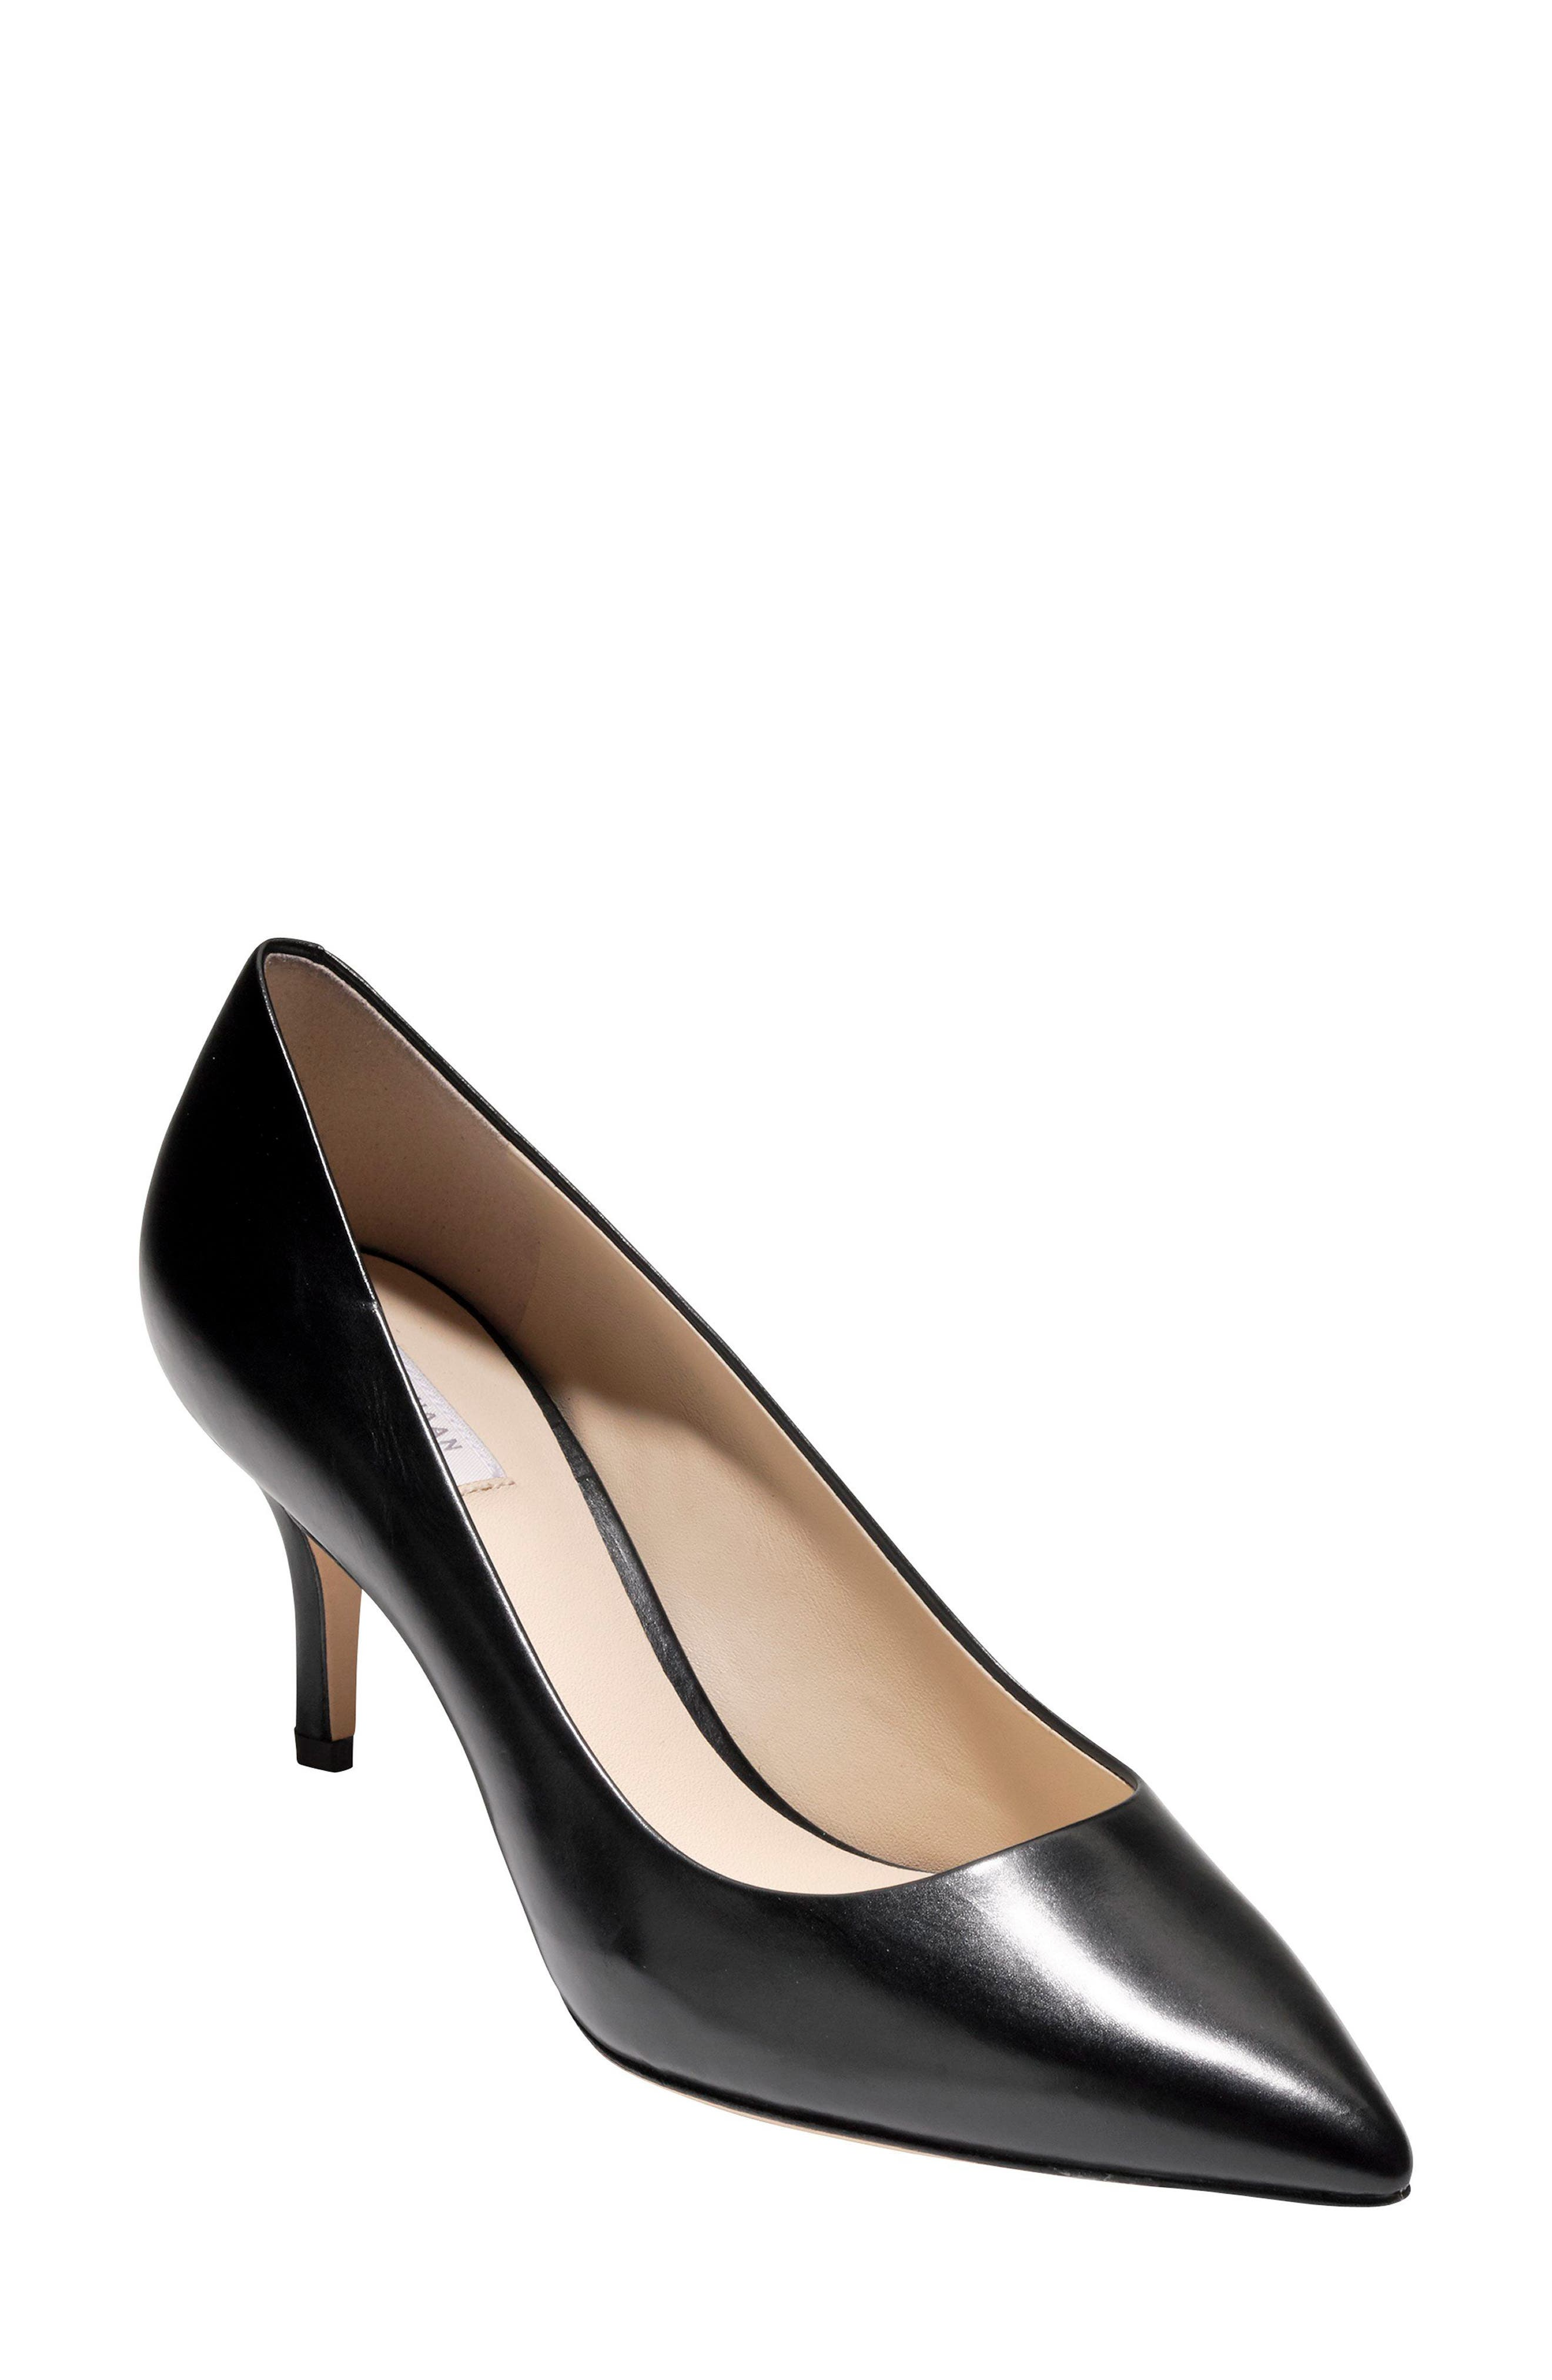 COLE HAAN Women'S Vesta Leather Pointed Toe Mid-Heel Pumps in Black Leather